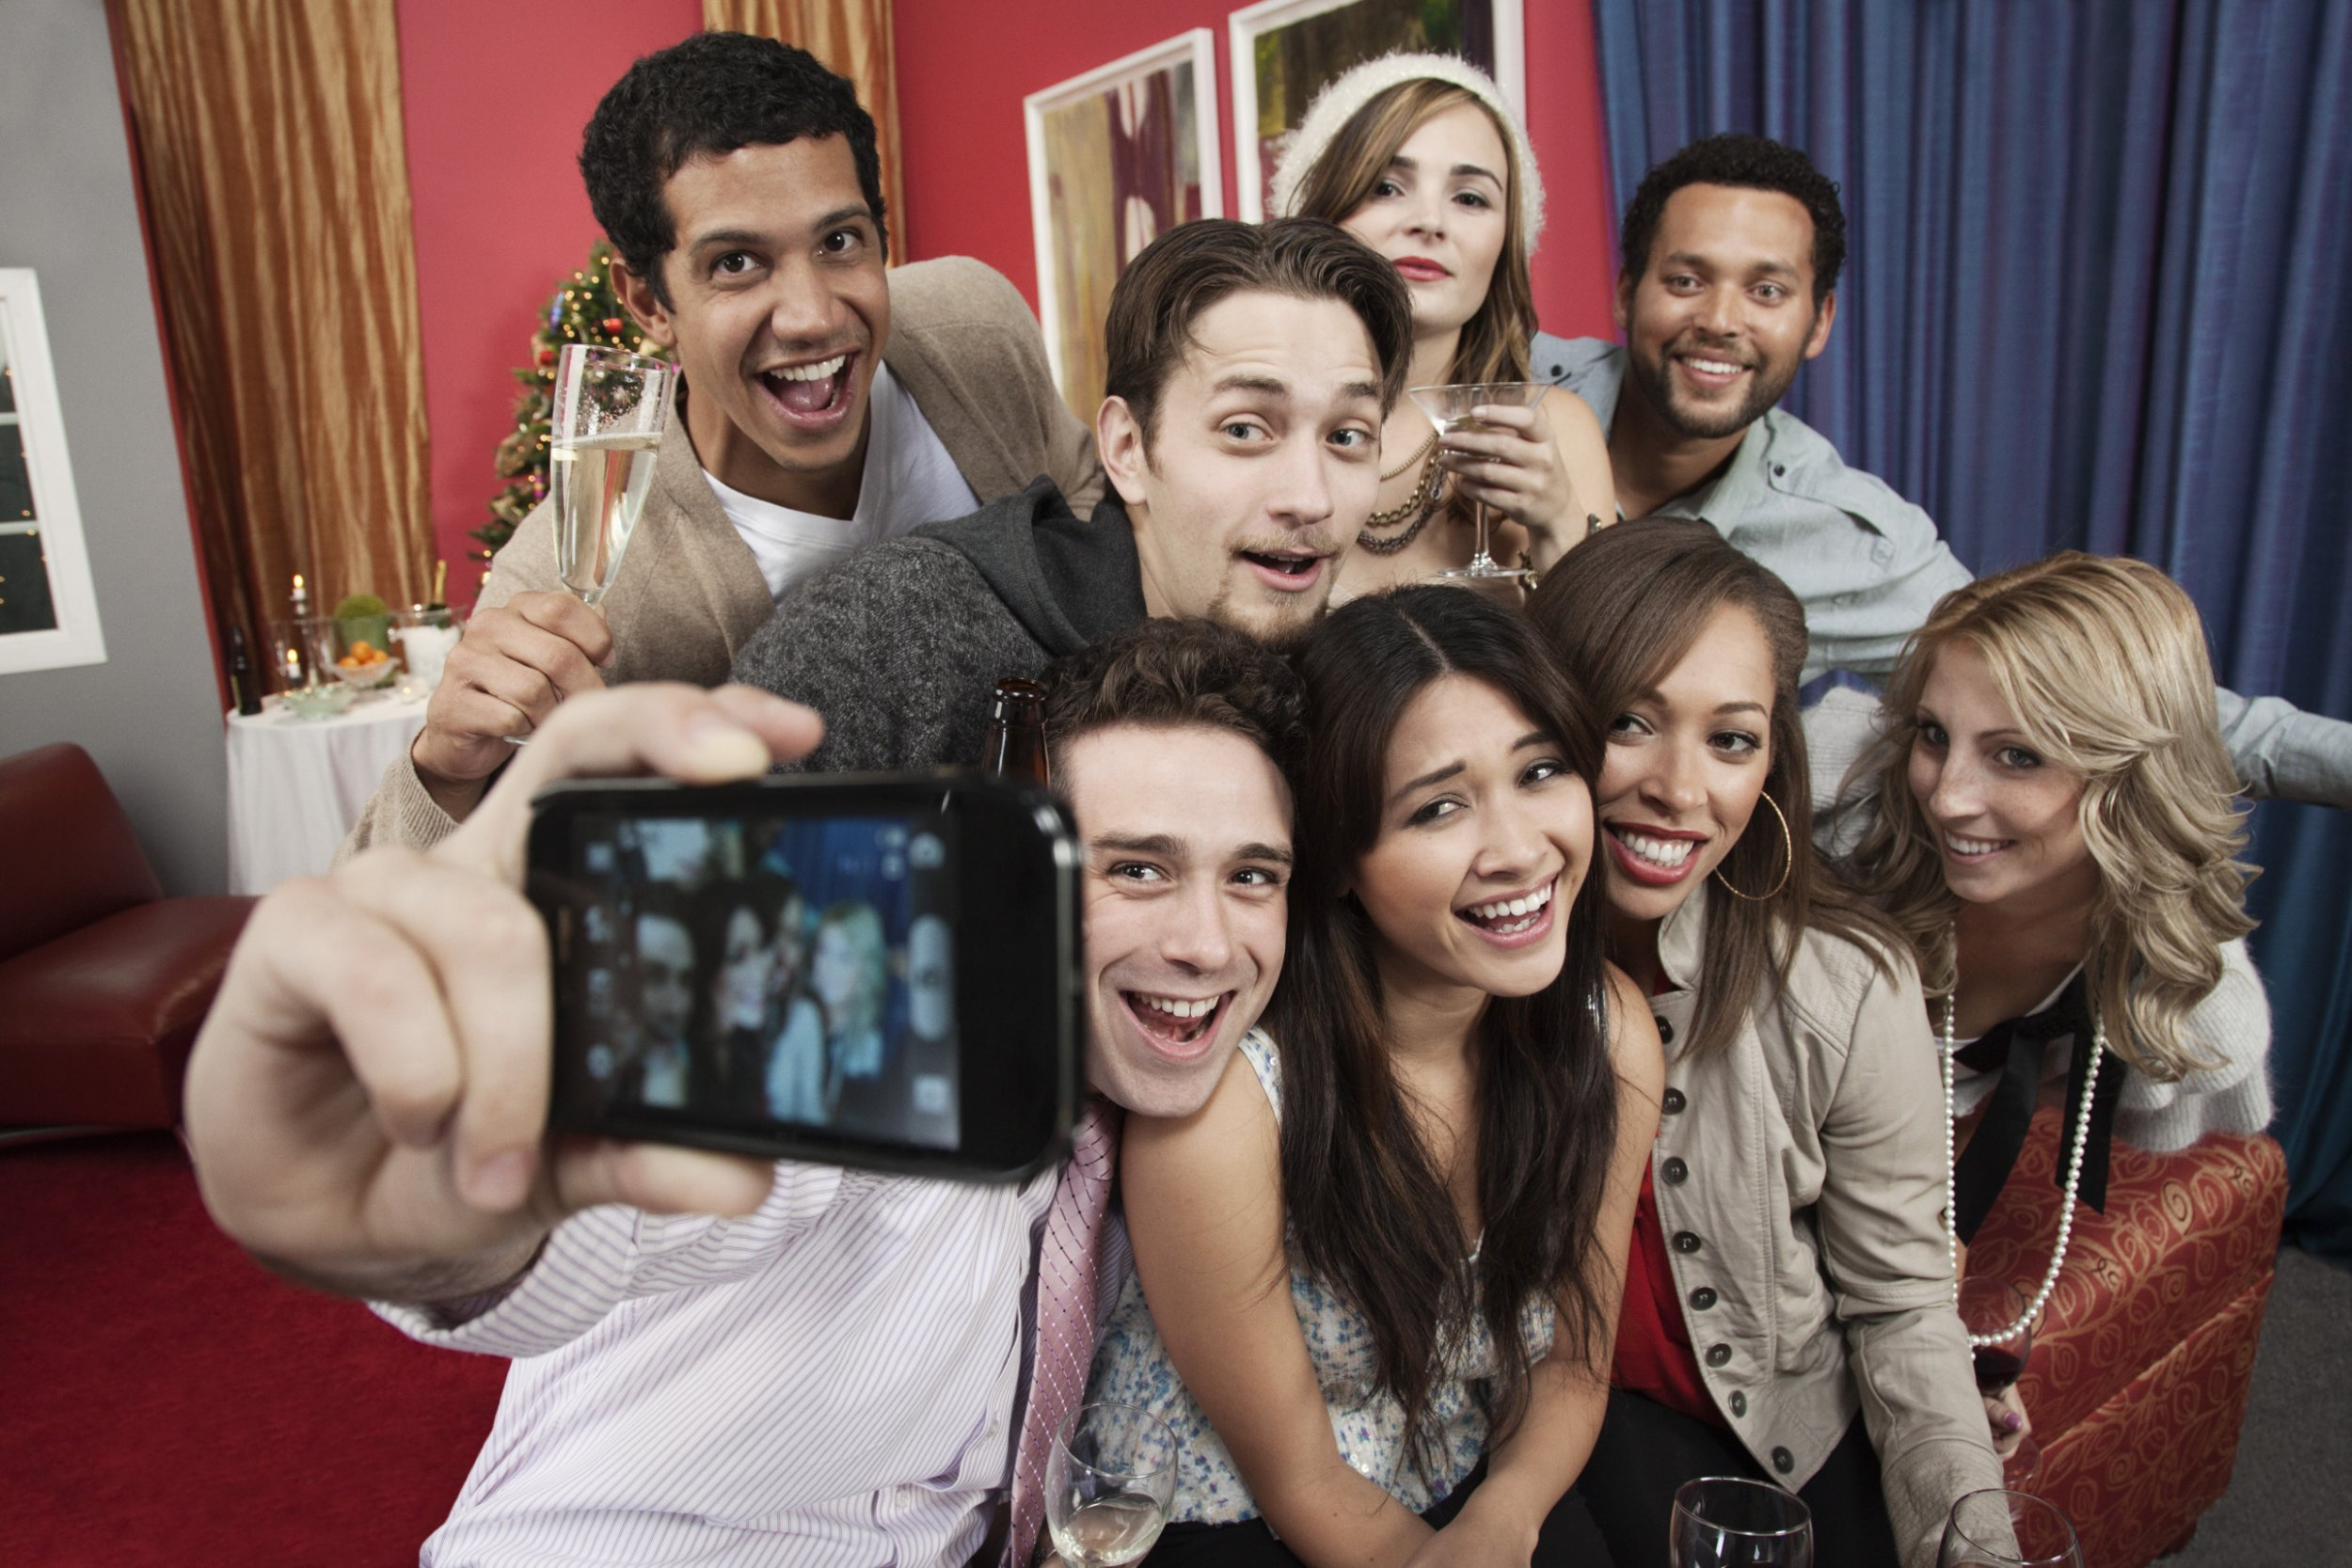 Now you can hire friends so you don't have to take selfies by yourself picture: Getty Images